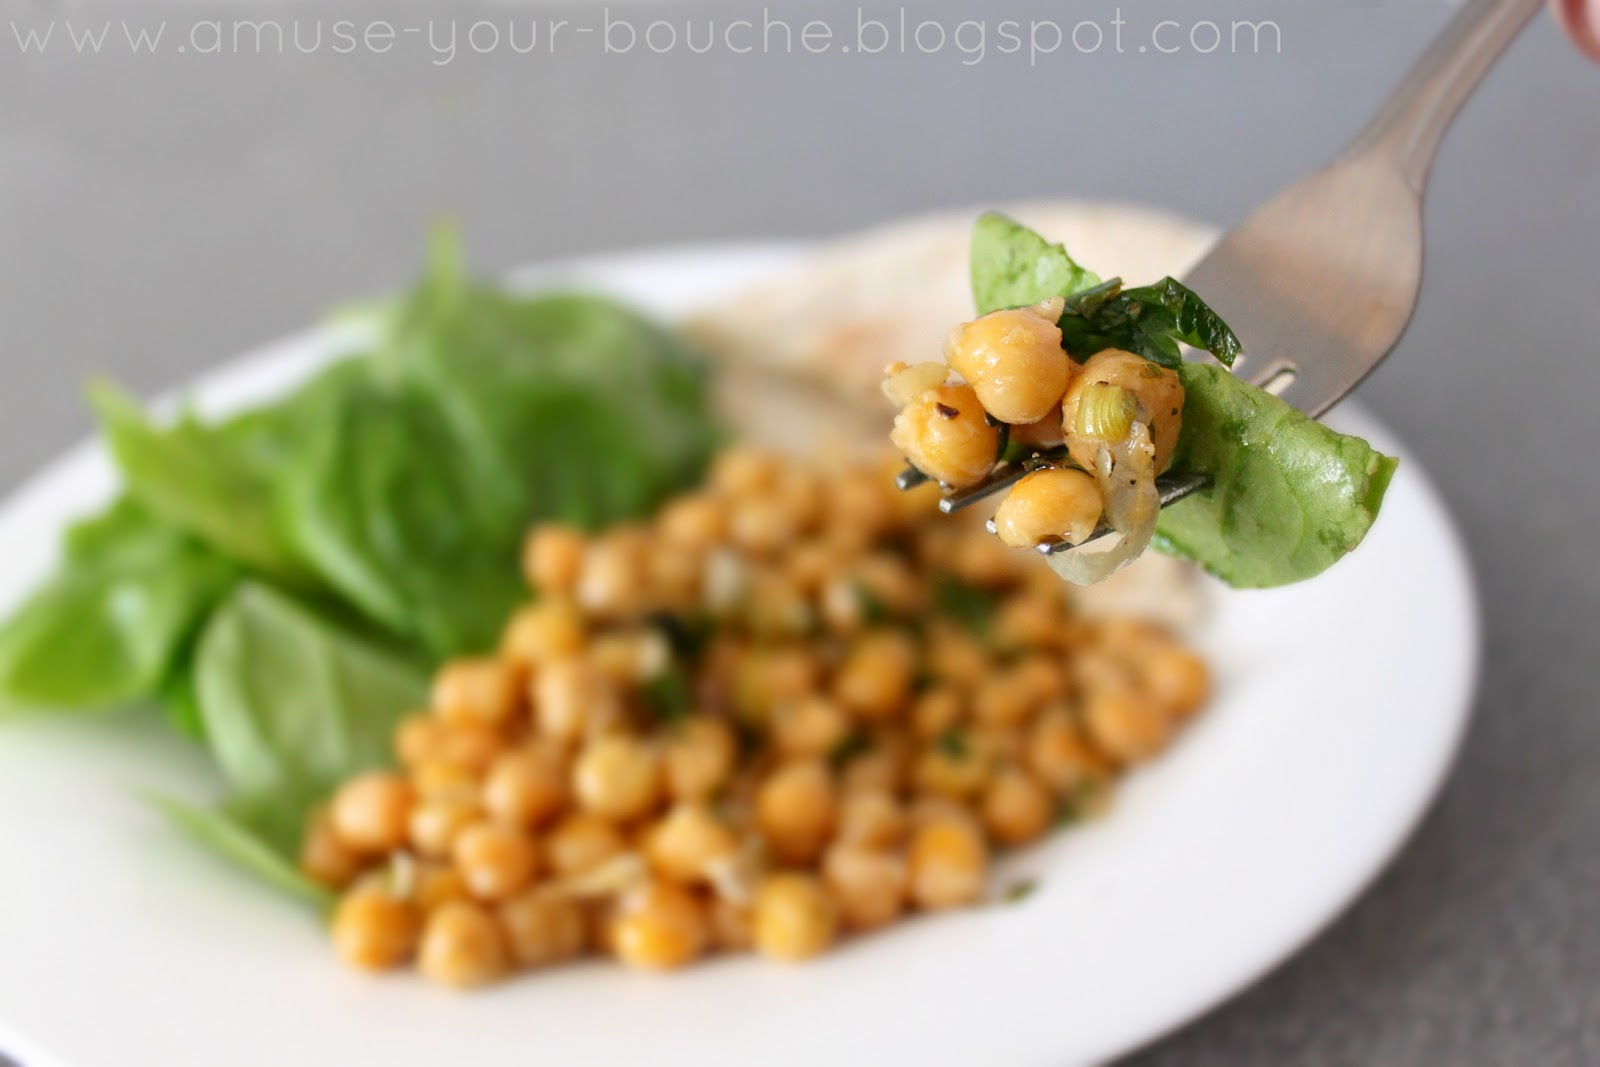 Forum on this topic: Peppery Chickpeas, peppery-chickpeas/